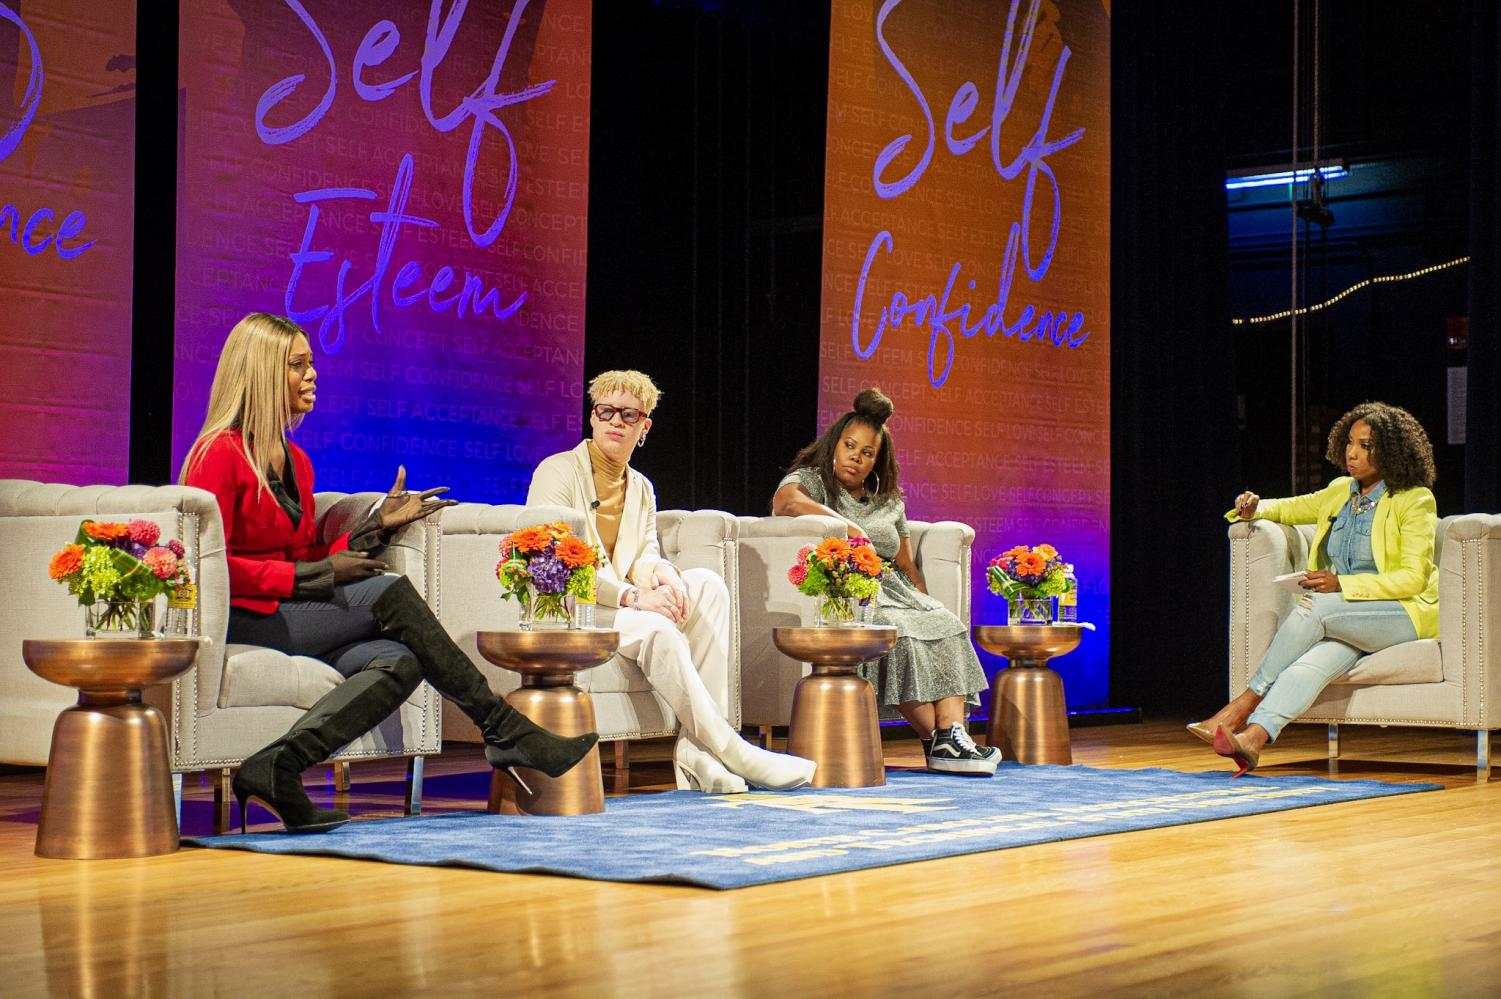 Cox, Ross and Riley discuss the process and principles of self-love.